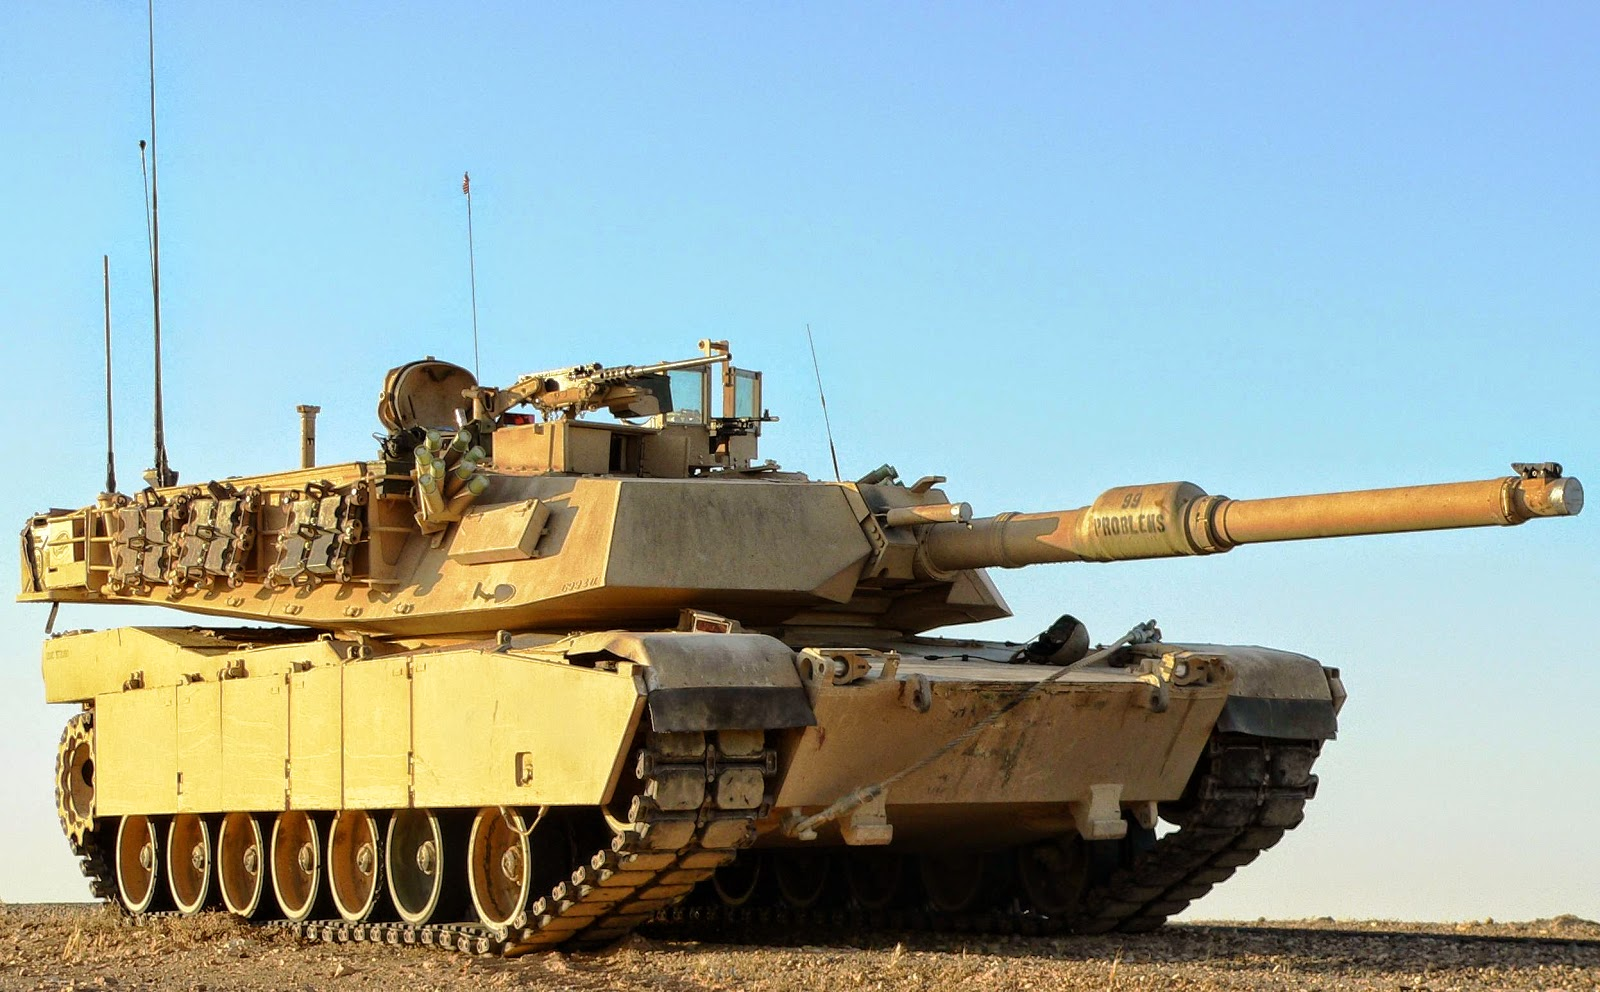 United States Ground Forces: M1A2 Abrams